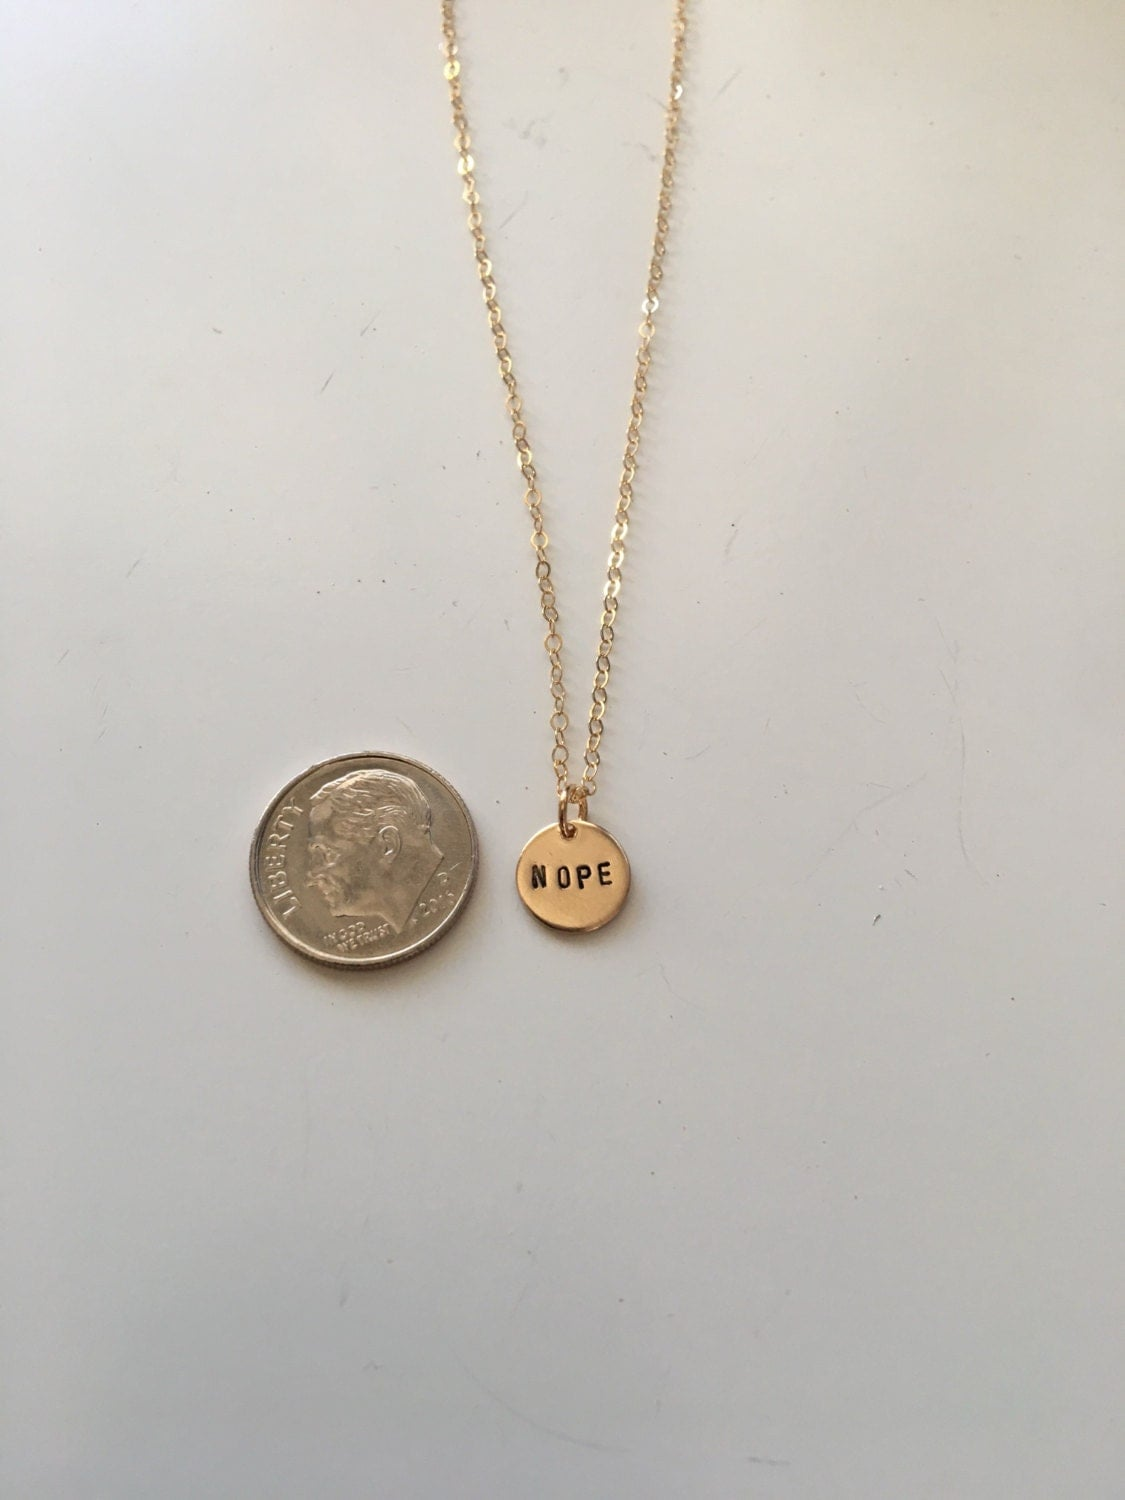 Nope charm necklace Gold fill or Sterling